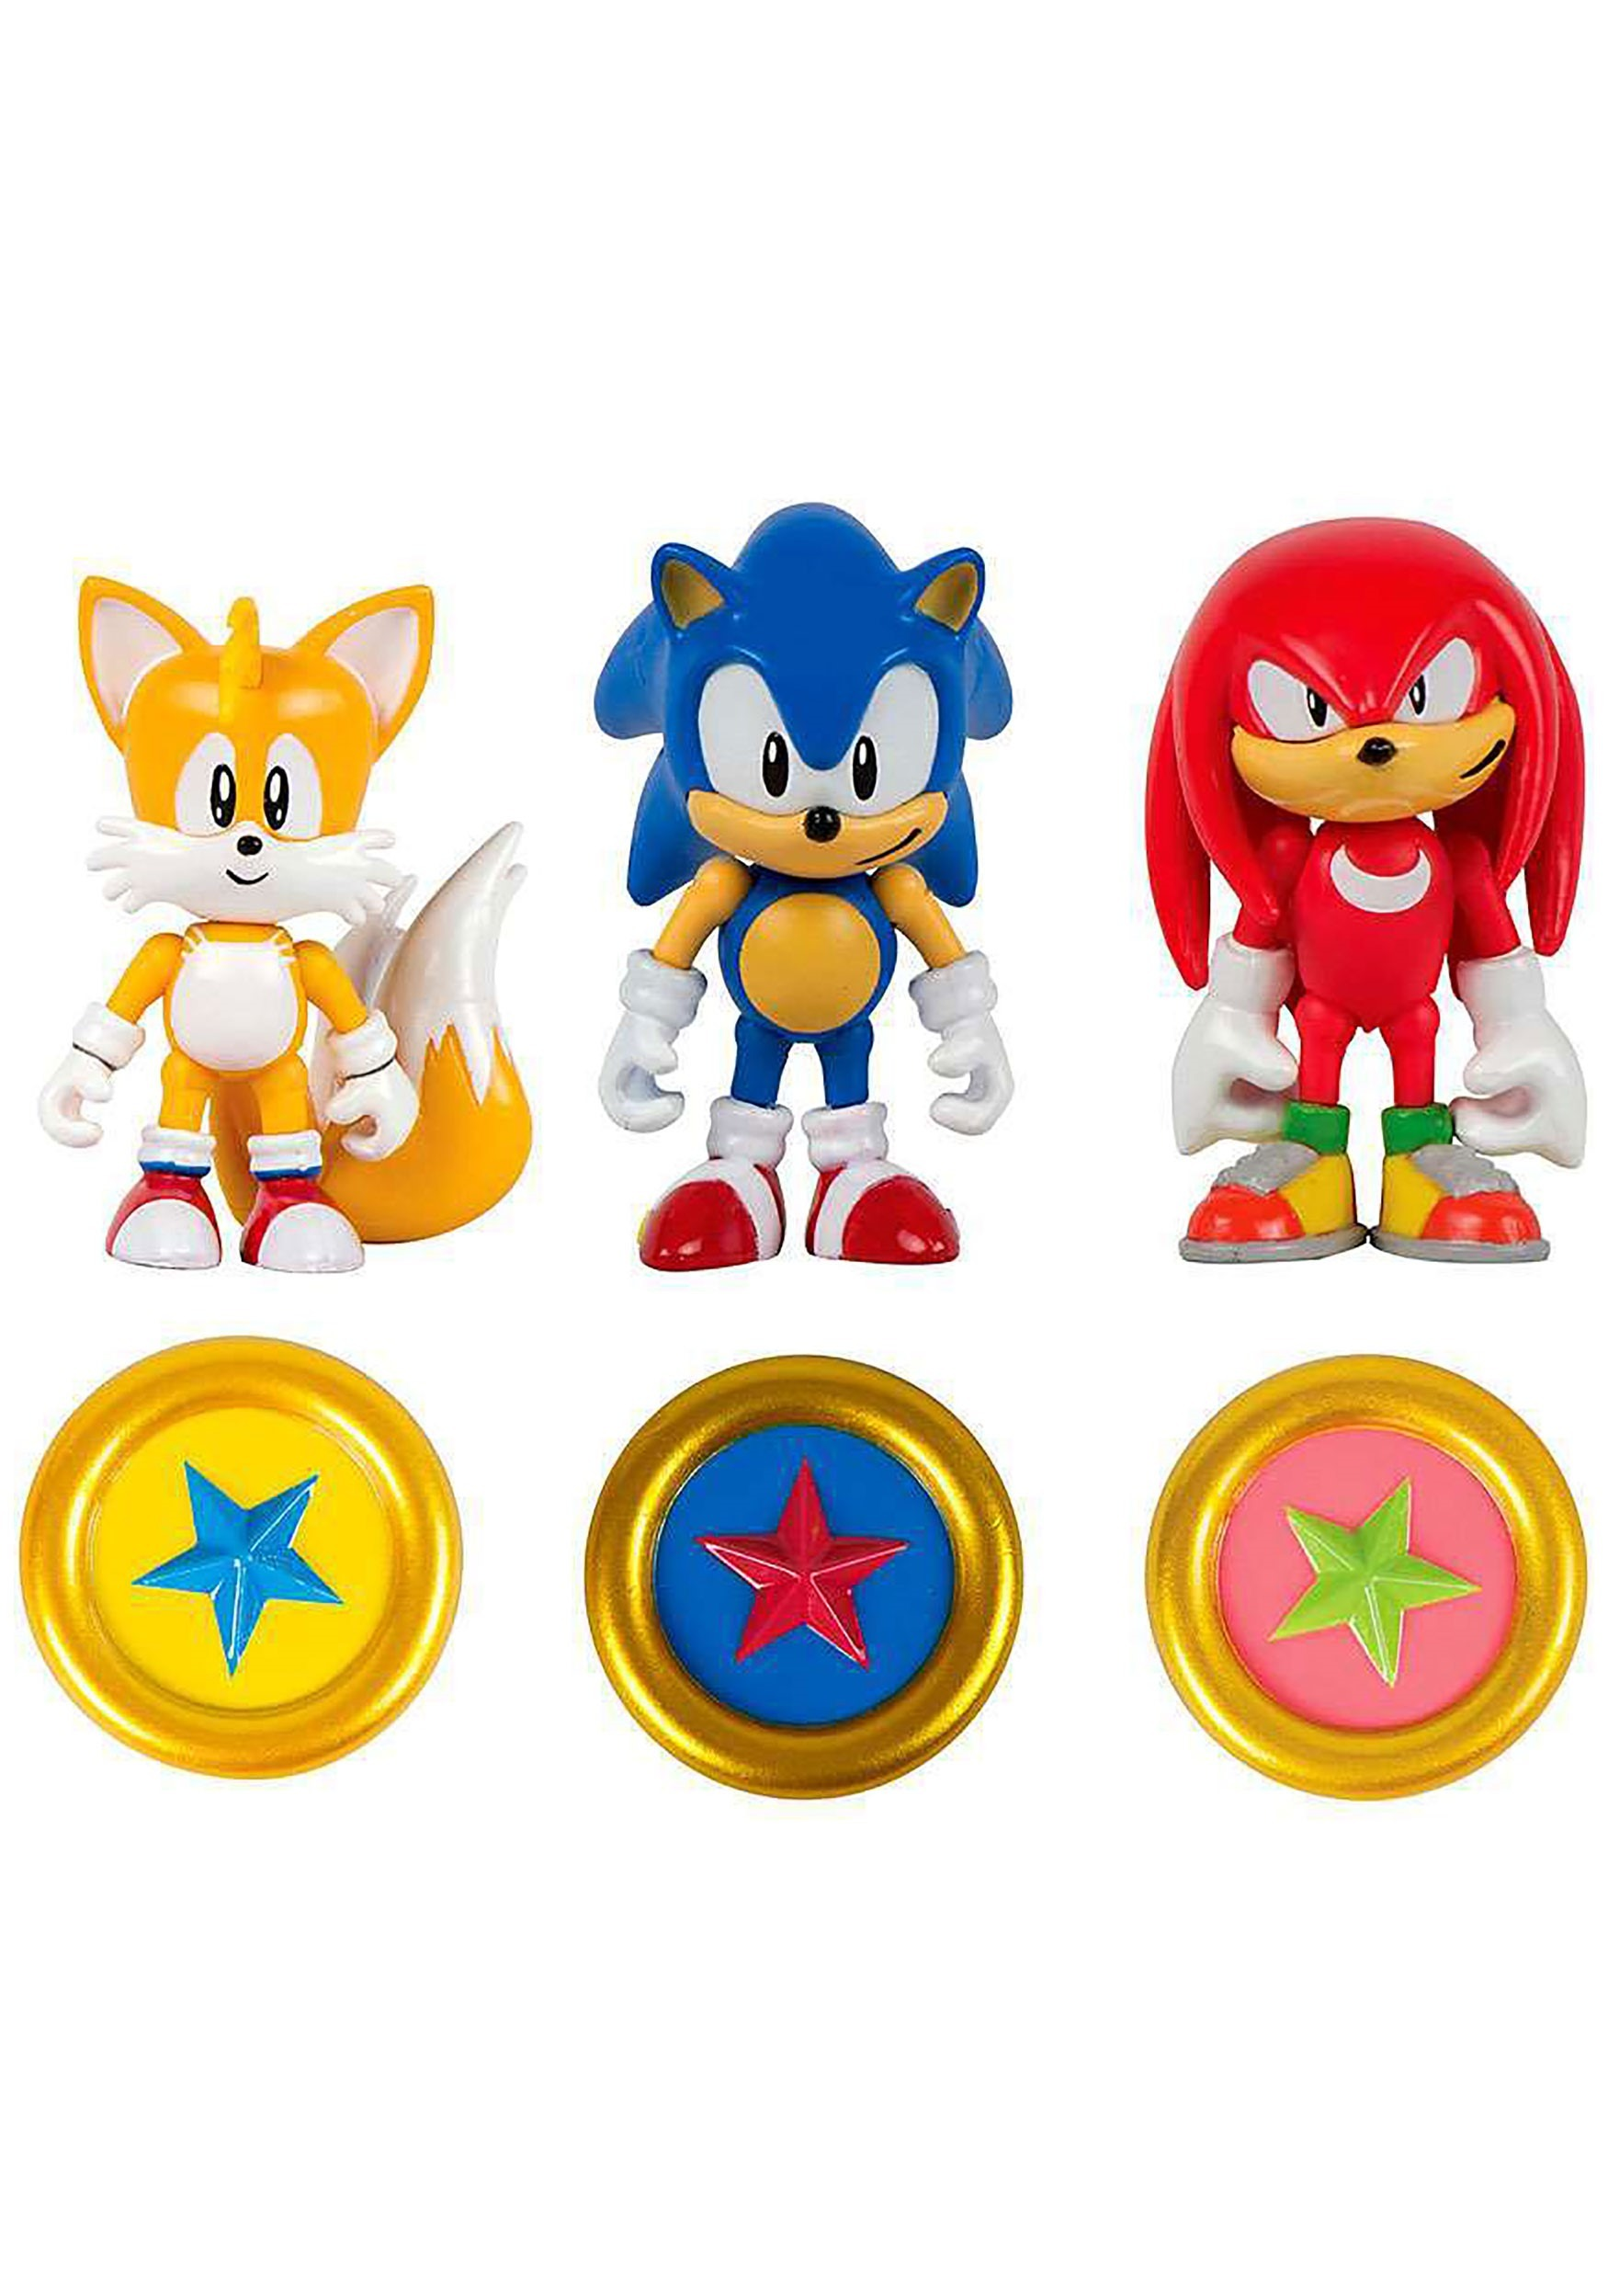 Sonic the hedgehog 3 figure 3 pack with rings